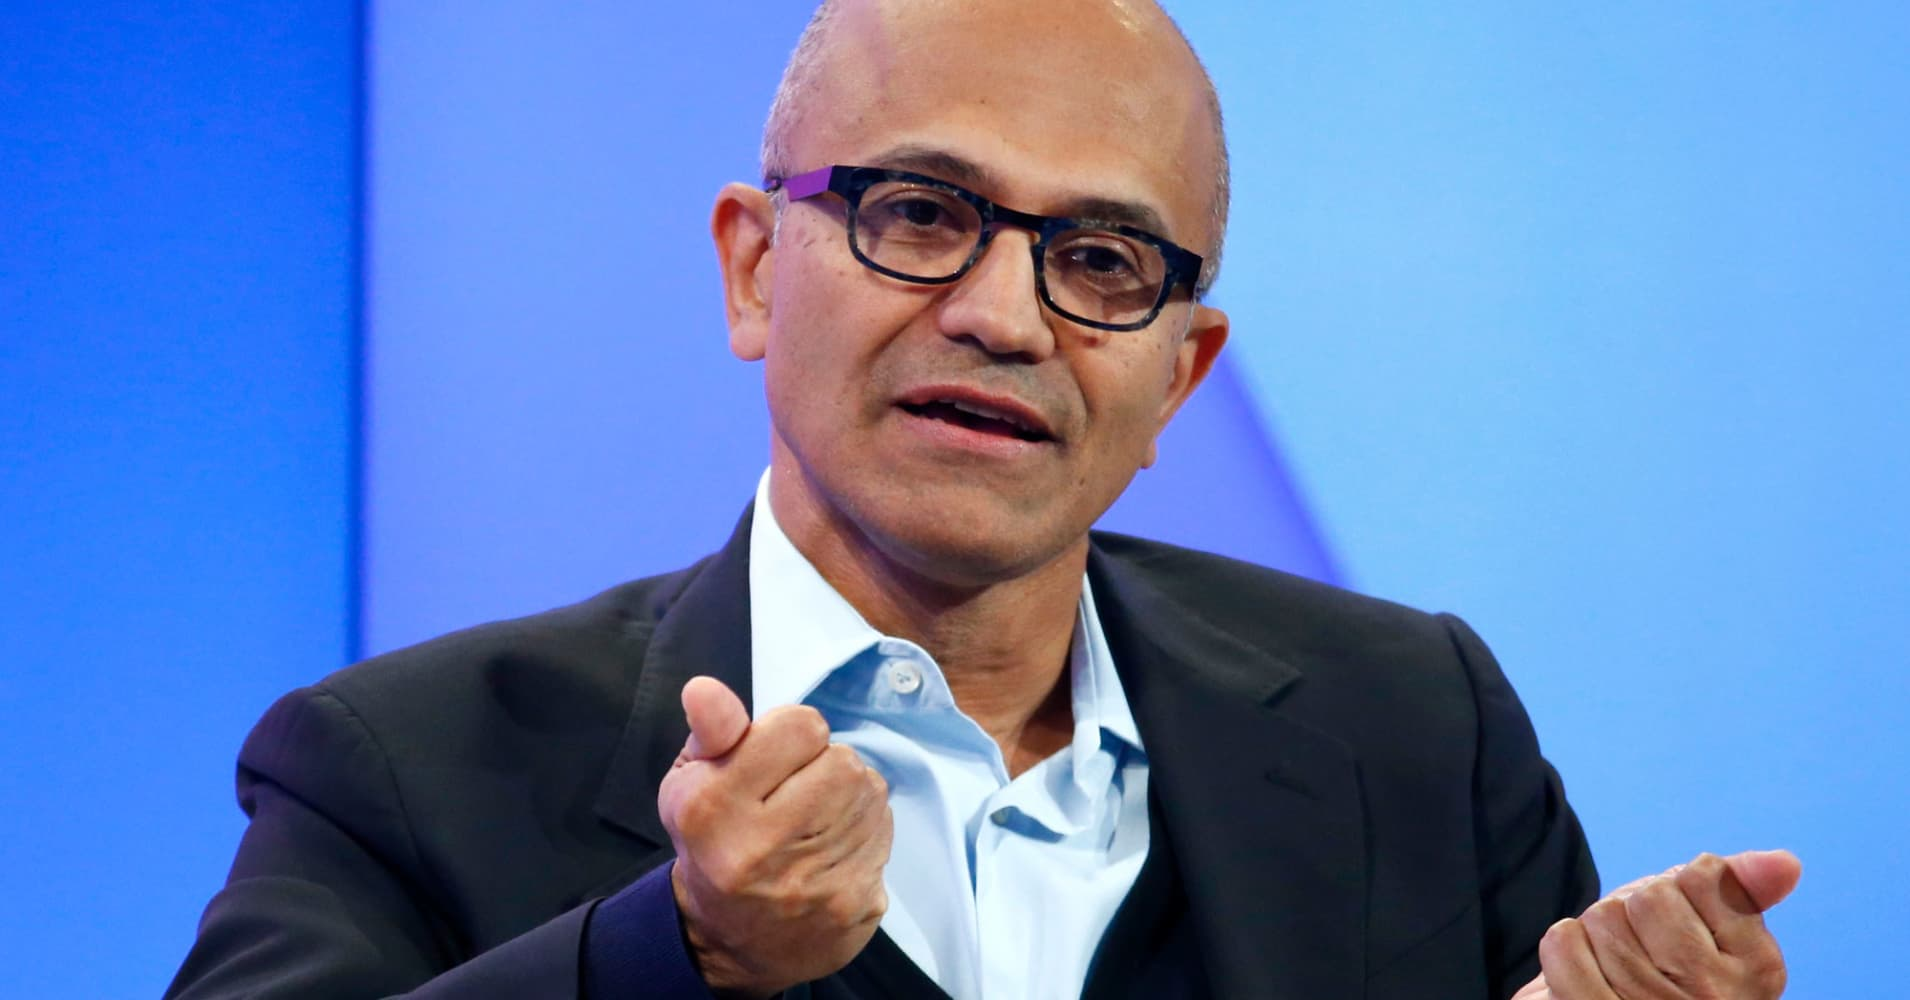 Retailers push cloud-data start-up Snowflake to partner with Microsoft instead of Amazon